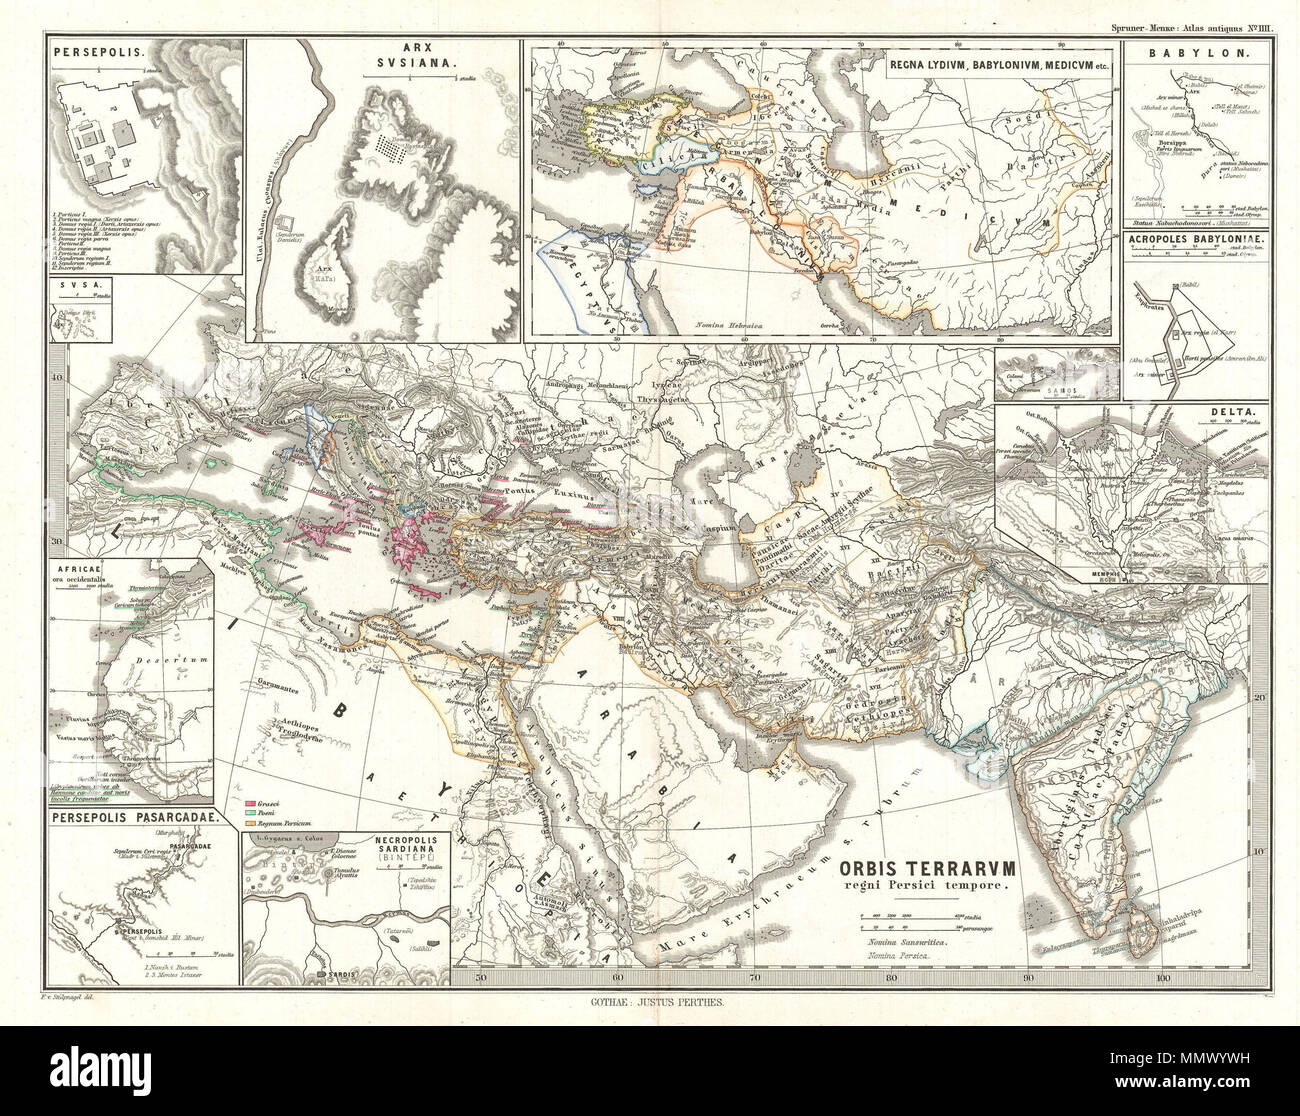 English This Is Karl Von Spruner S 1865 Map Of The World At The Time Of The Persian Empire With Eleven Insets The Insets Starting Clockwise From The Upper Left Quadrant Feature Persepolis